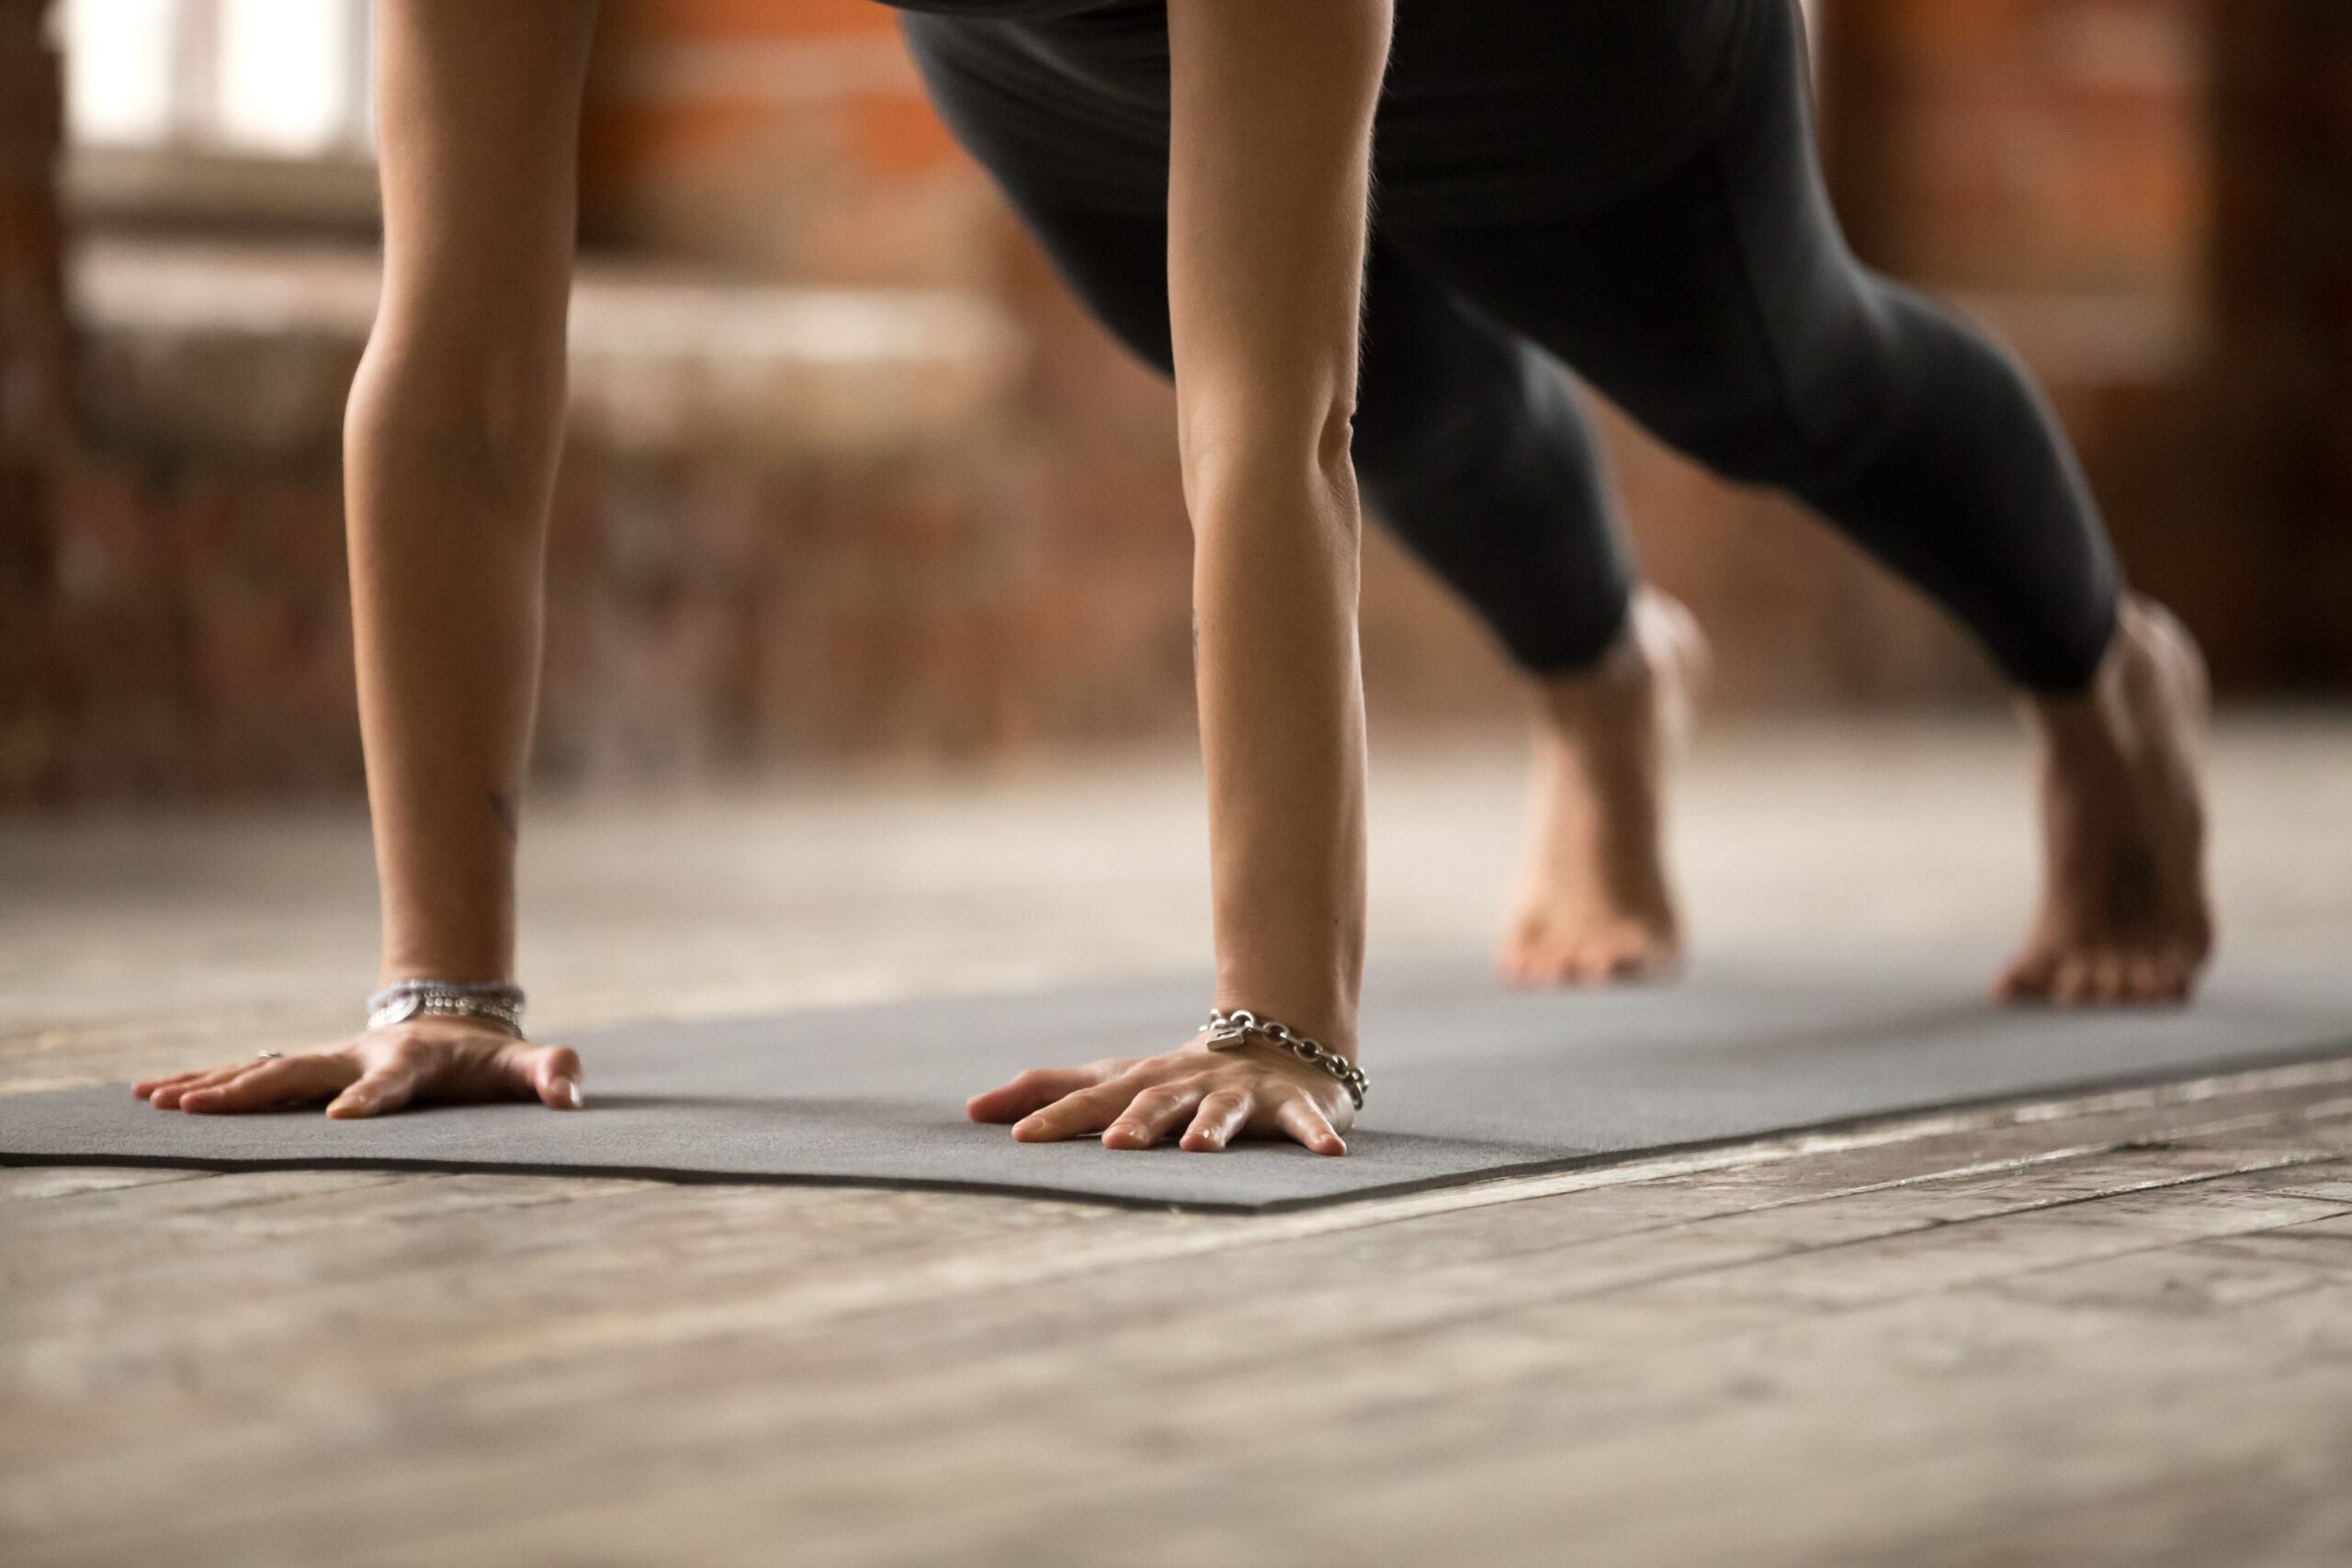 Young sporty woman practicing yoga, doing Push ups or press ups exercise, phalankasana, Plank pose, working out, wearing sportswear, black pants, indoor close up view, yoga studio